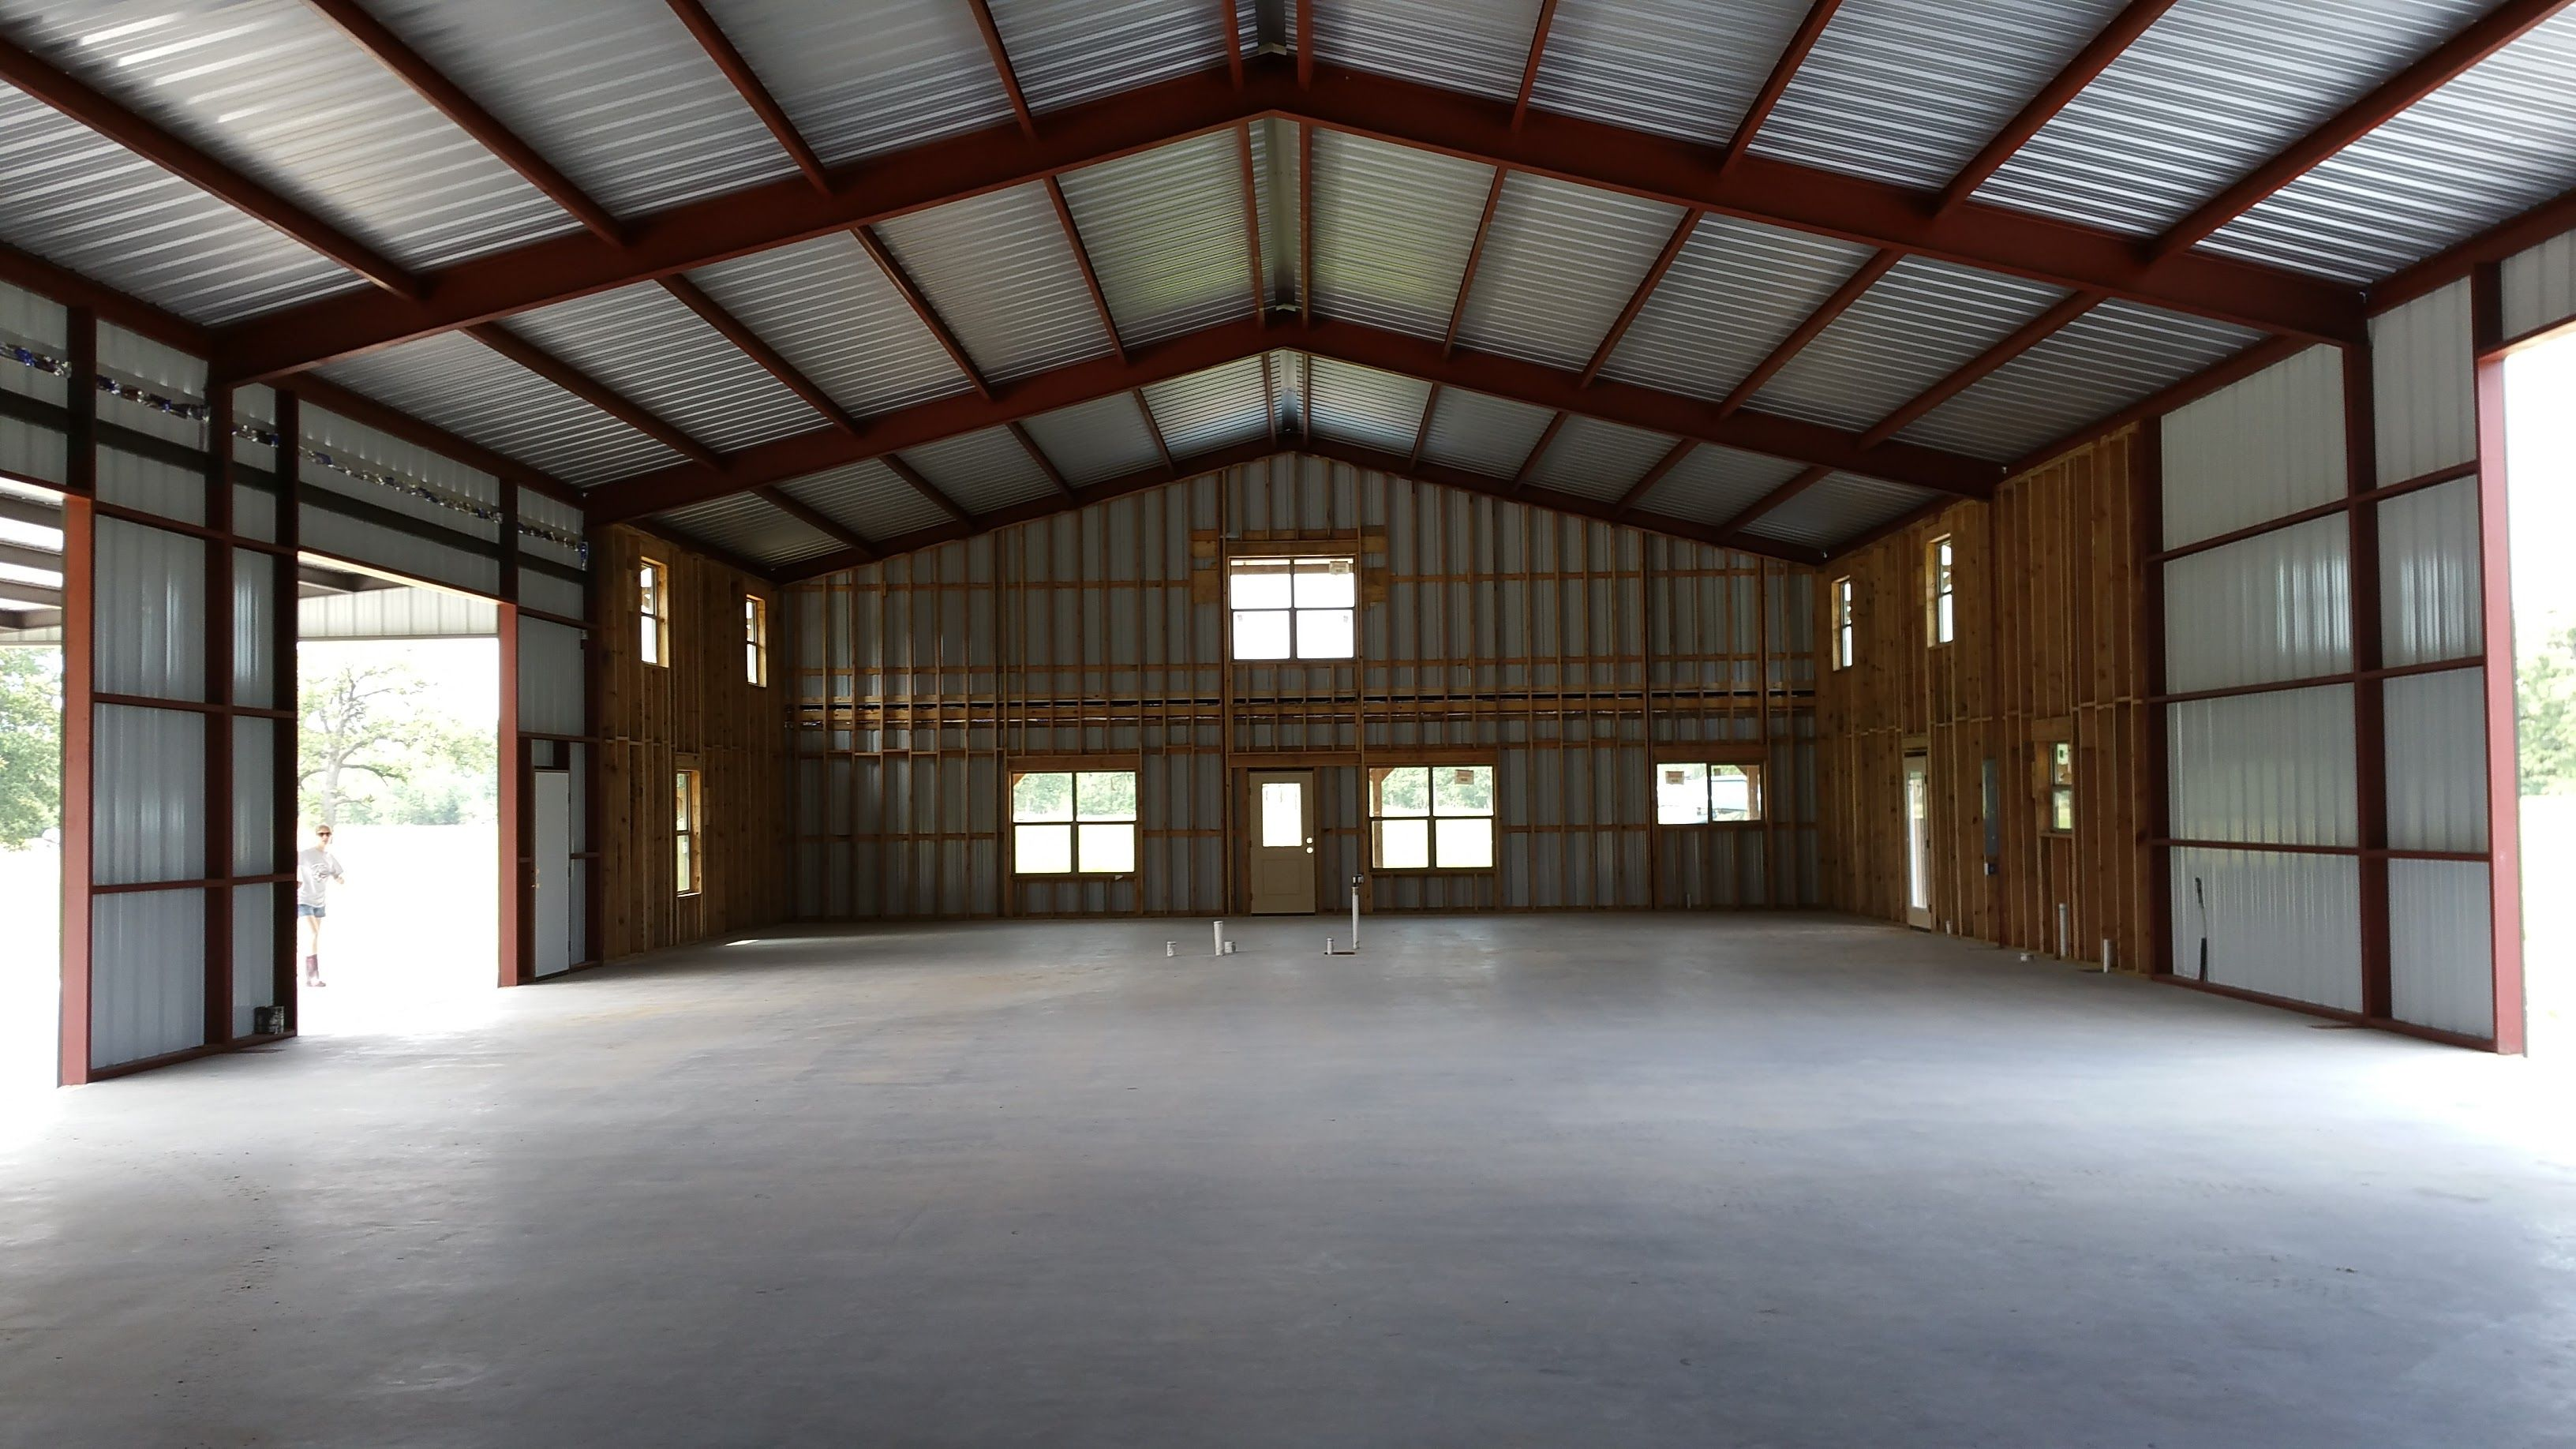 Barndo inside view 50x100 Metal building homes, Pole